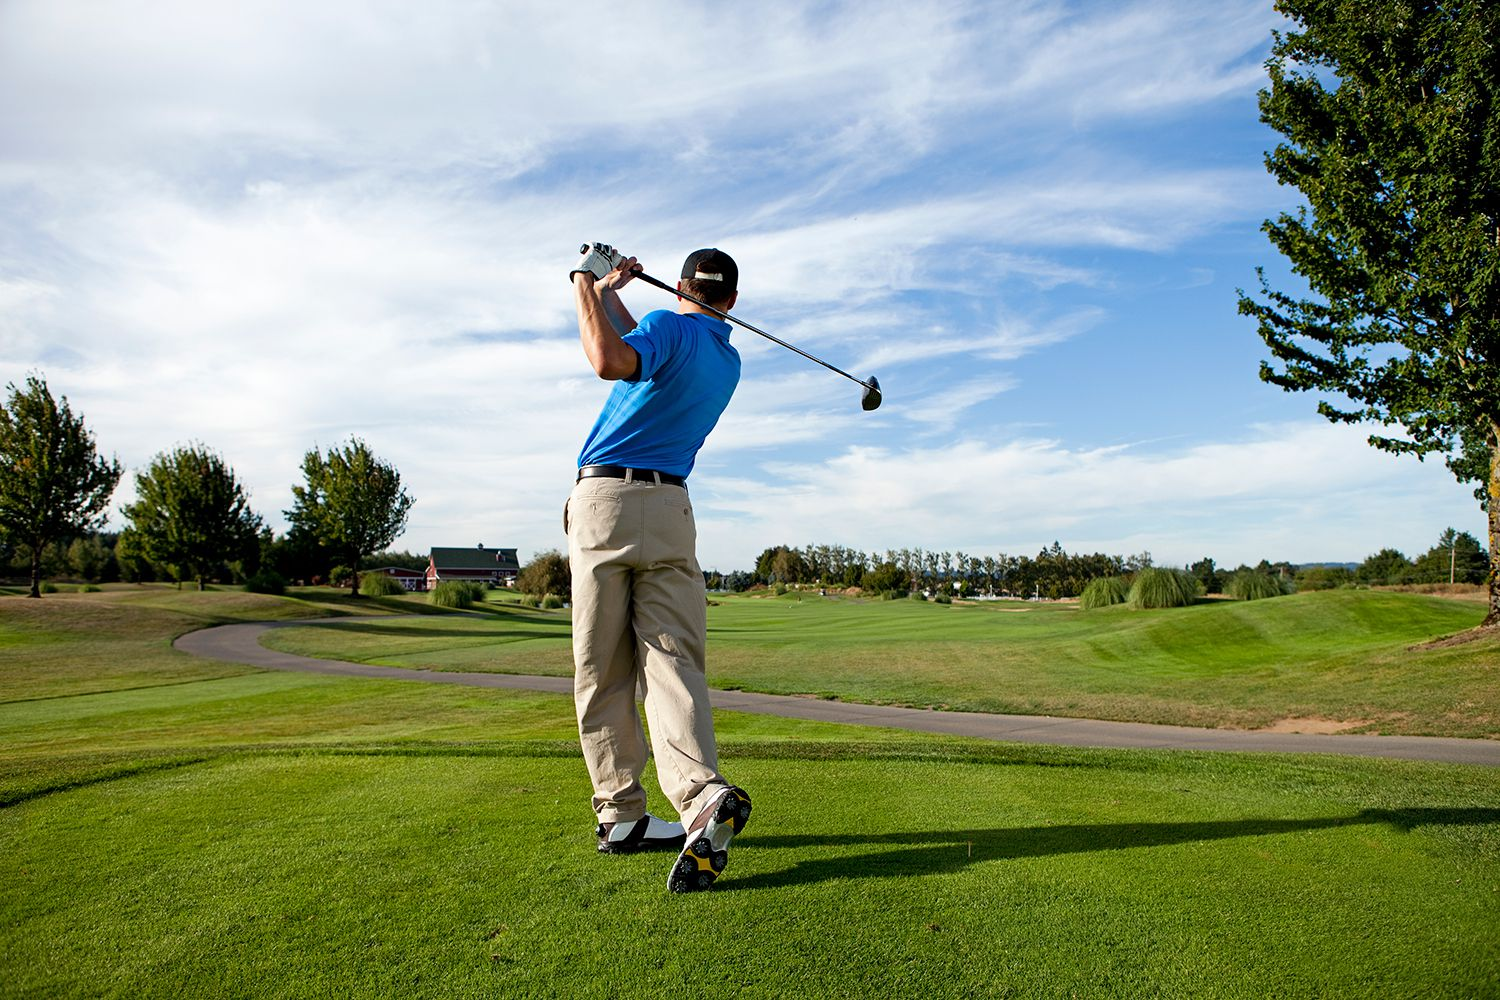 Golfers improve your torso rotation